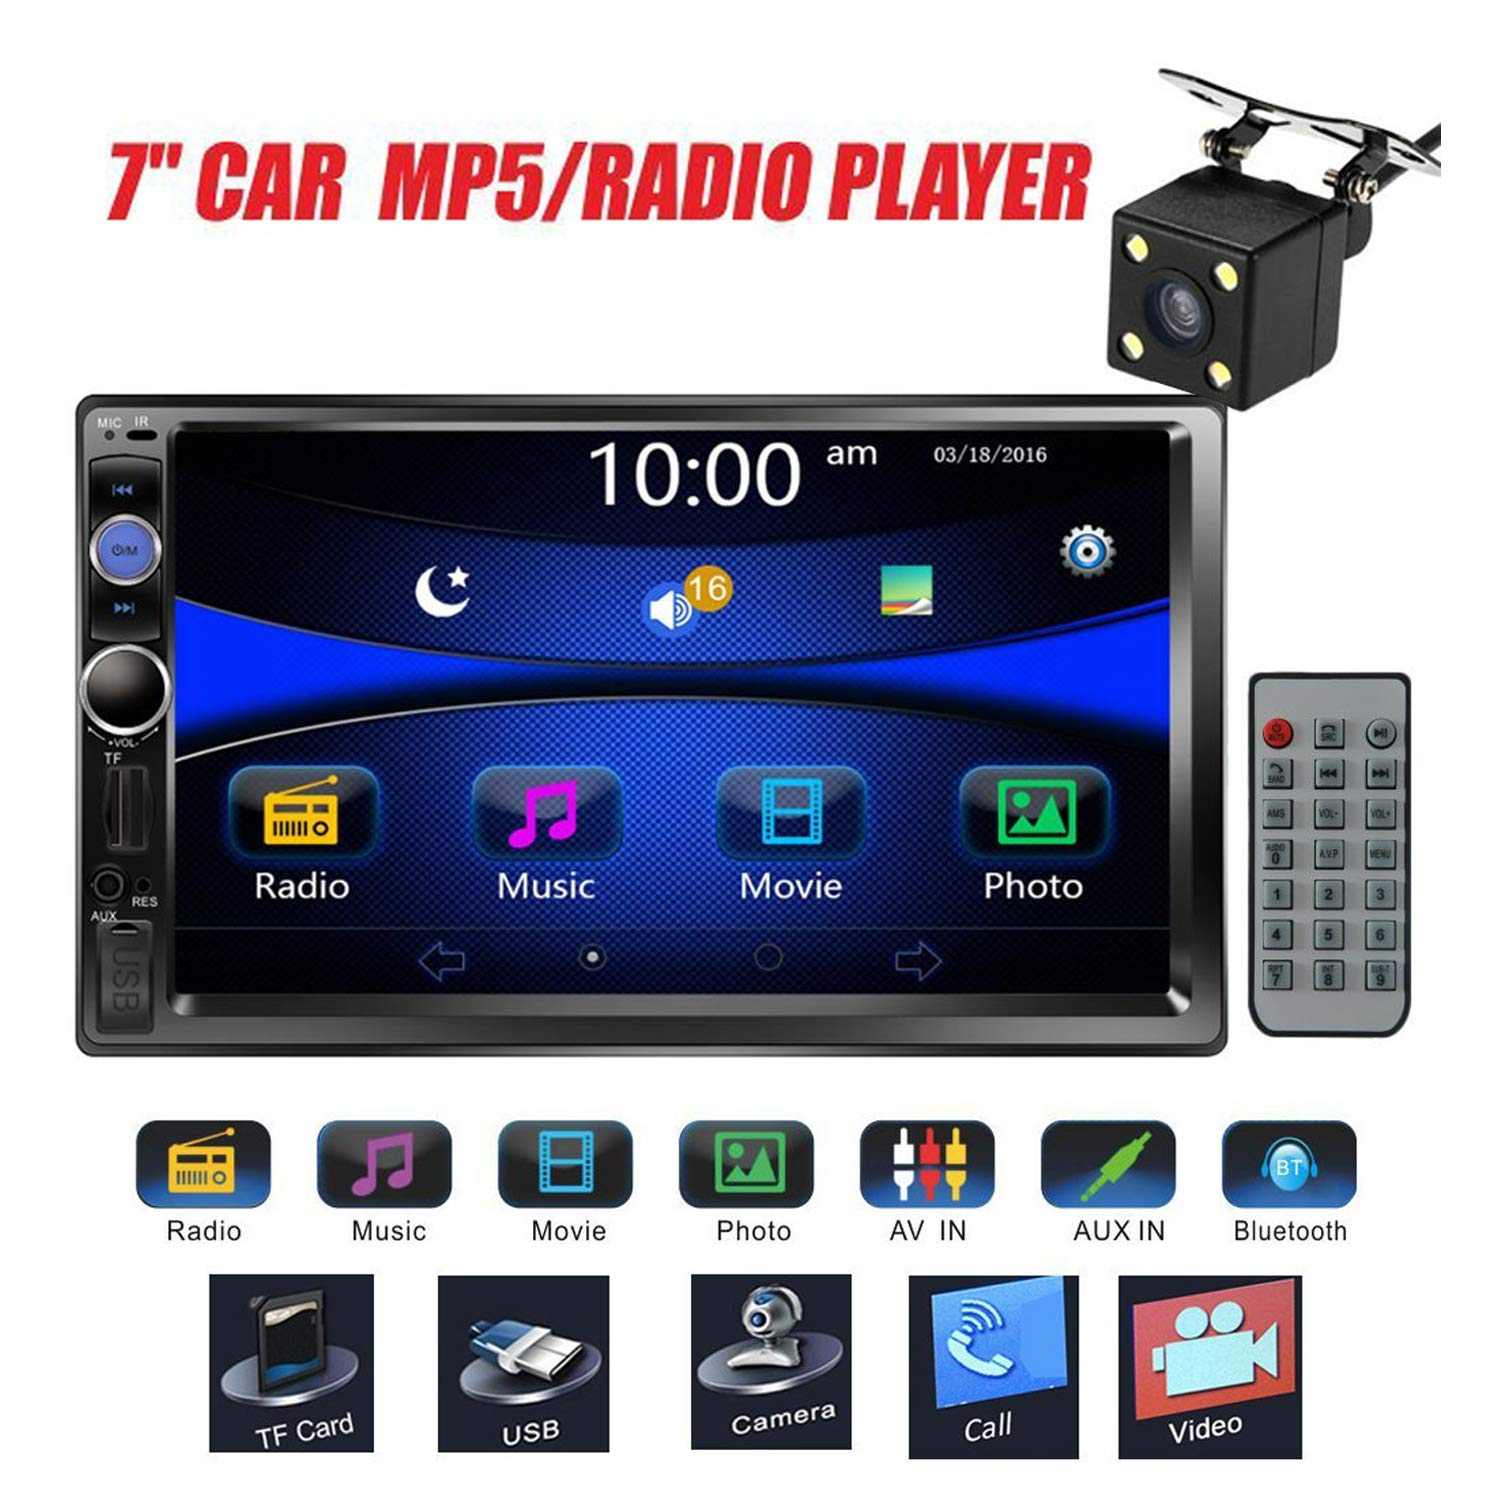 Regetek Car Stereo Double Din 7'' Touchscreen in Dash Stereo Car Audio Video Player Bluetooth FM AM Radio Mp3 /TF/USB/AUX-in/Subwoofer/Steering Wheel Controls + Remote Control+Rear View Camera by Regetek